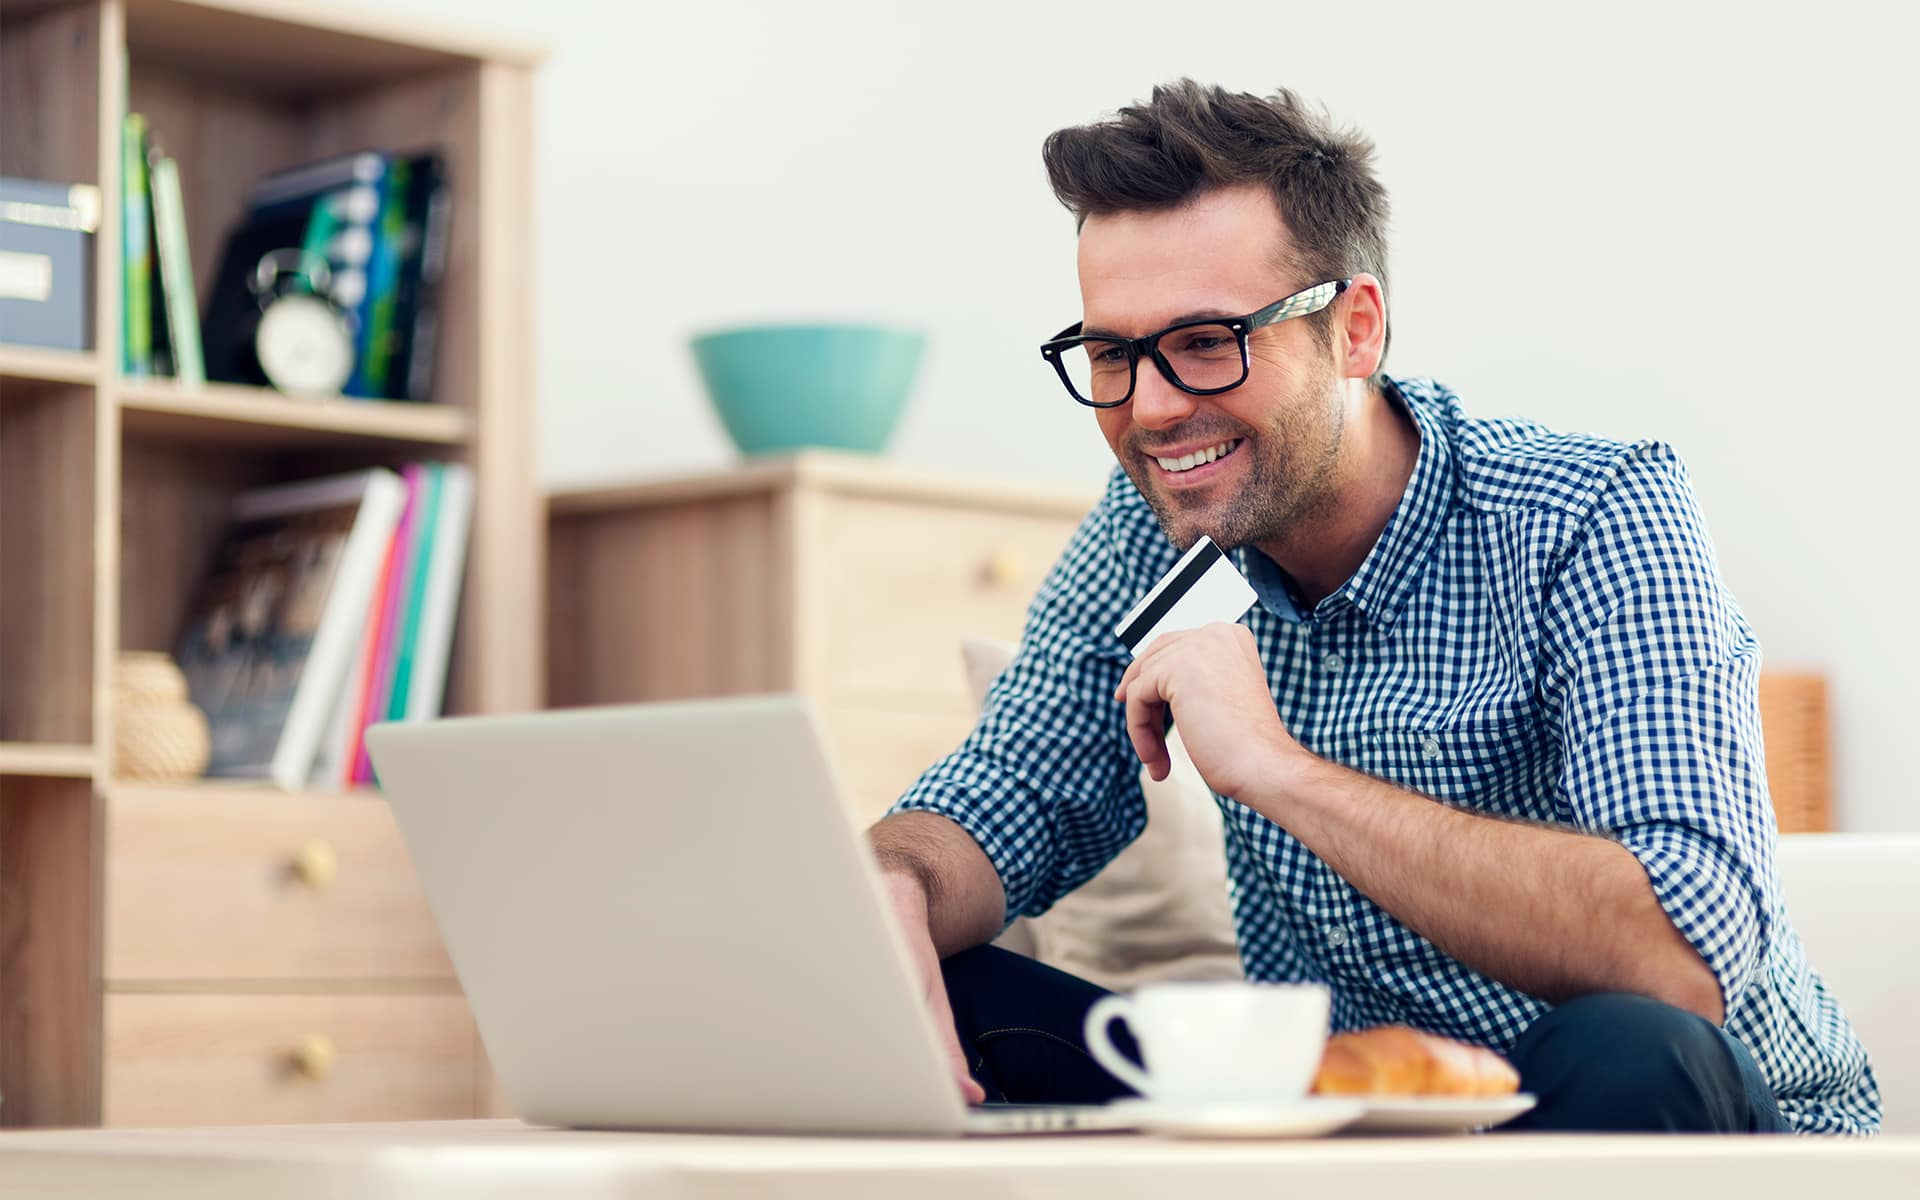 compliance and customer experience - man in front of a computer